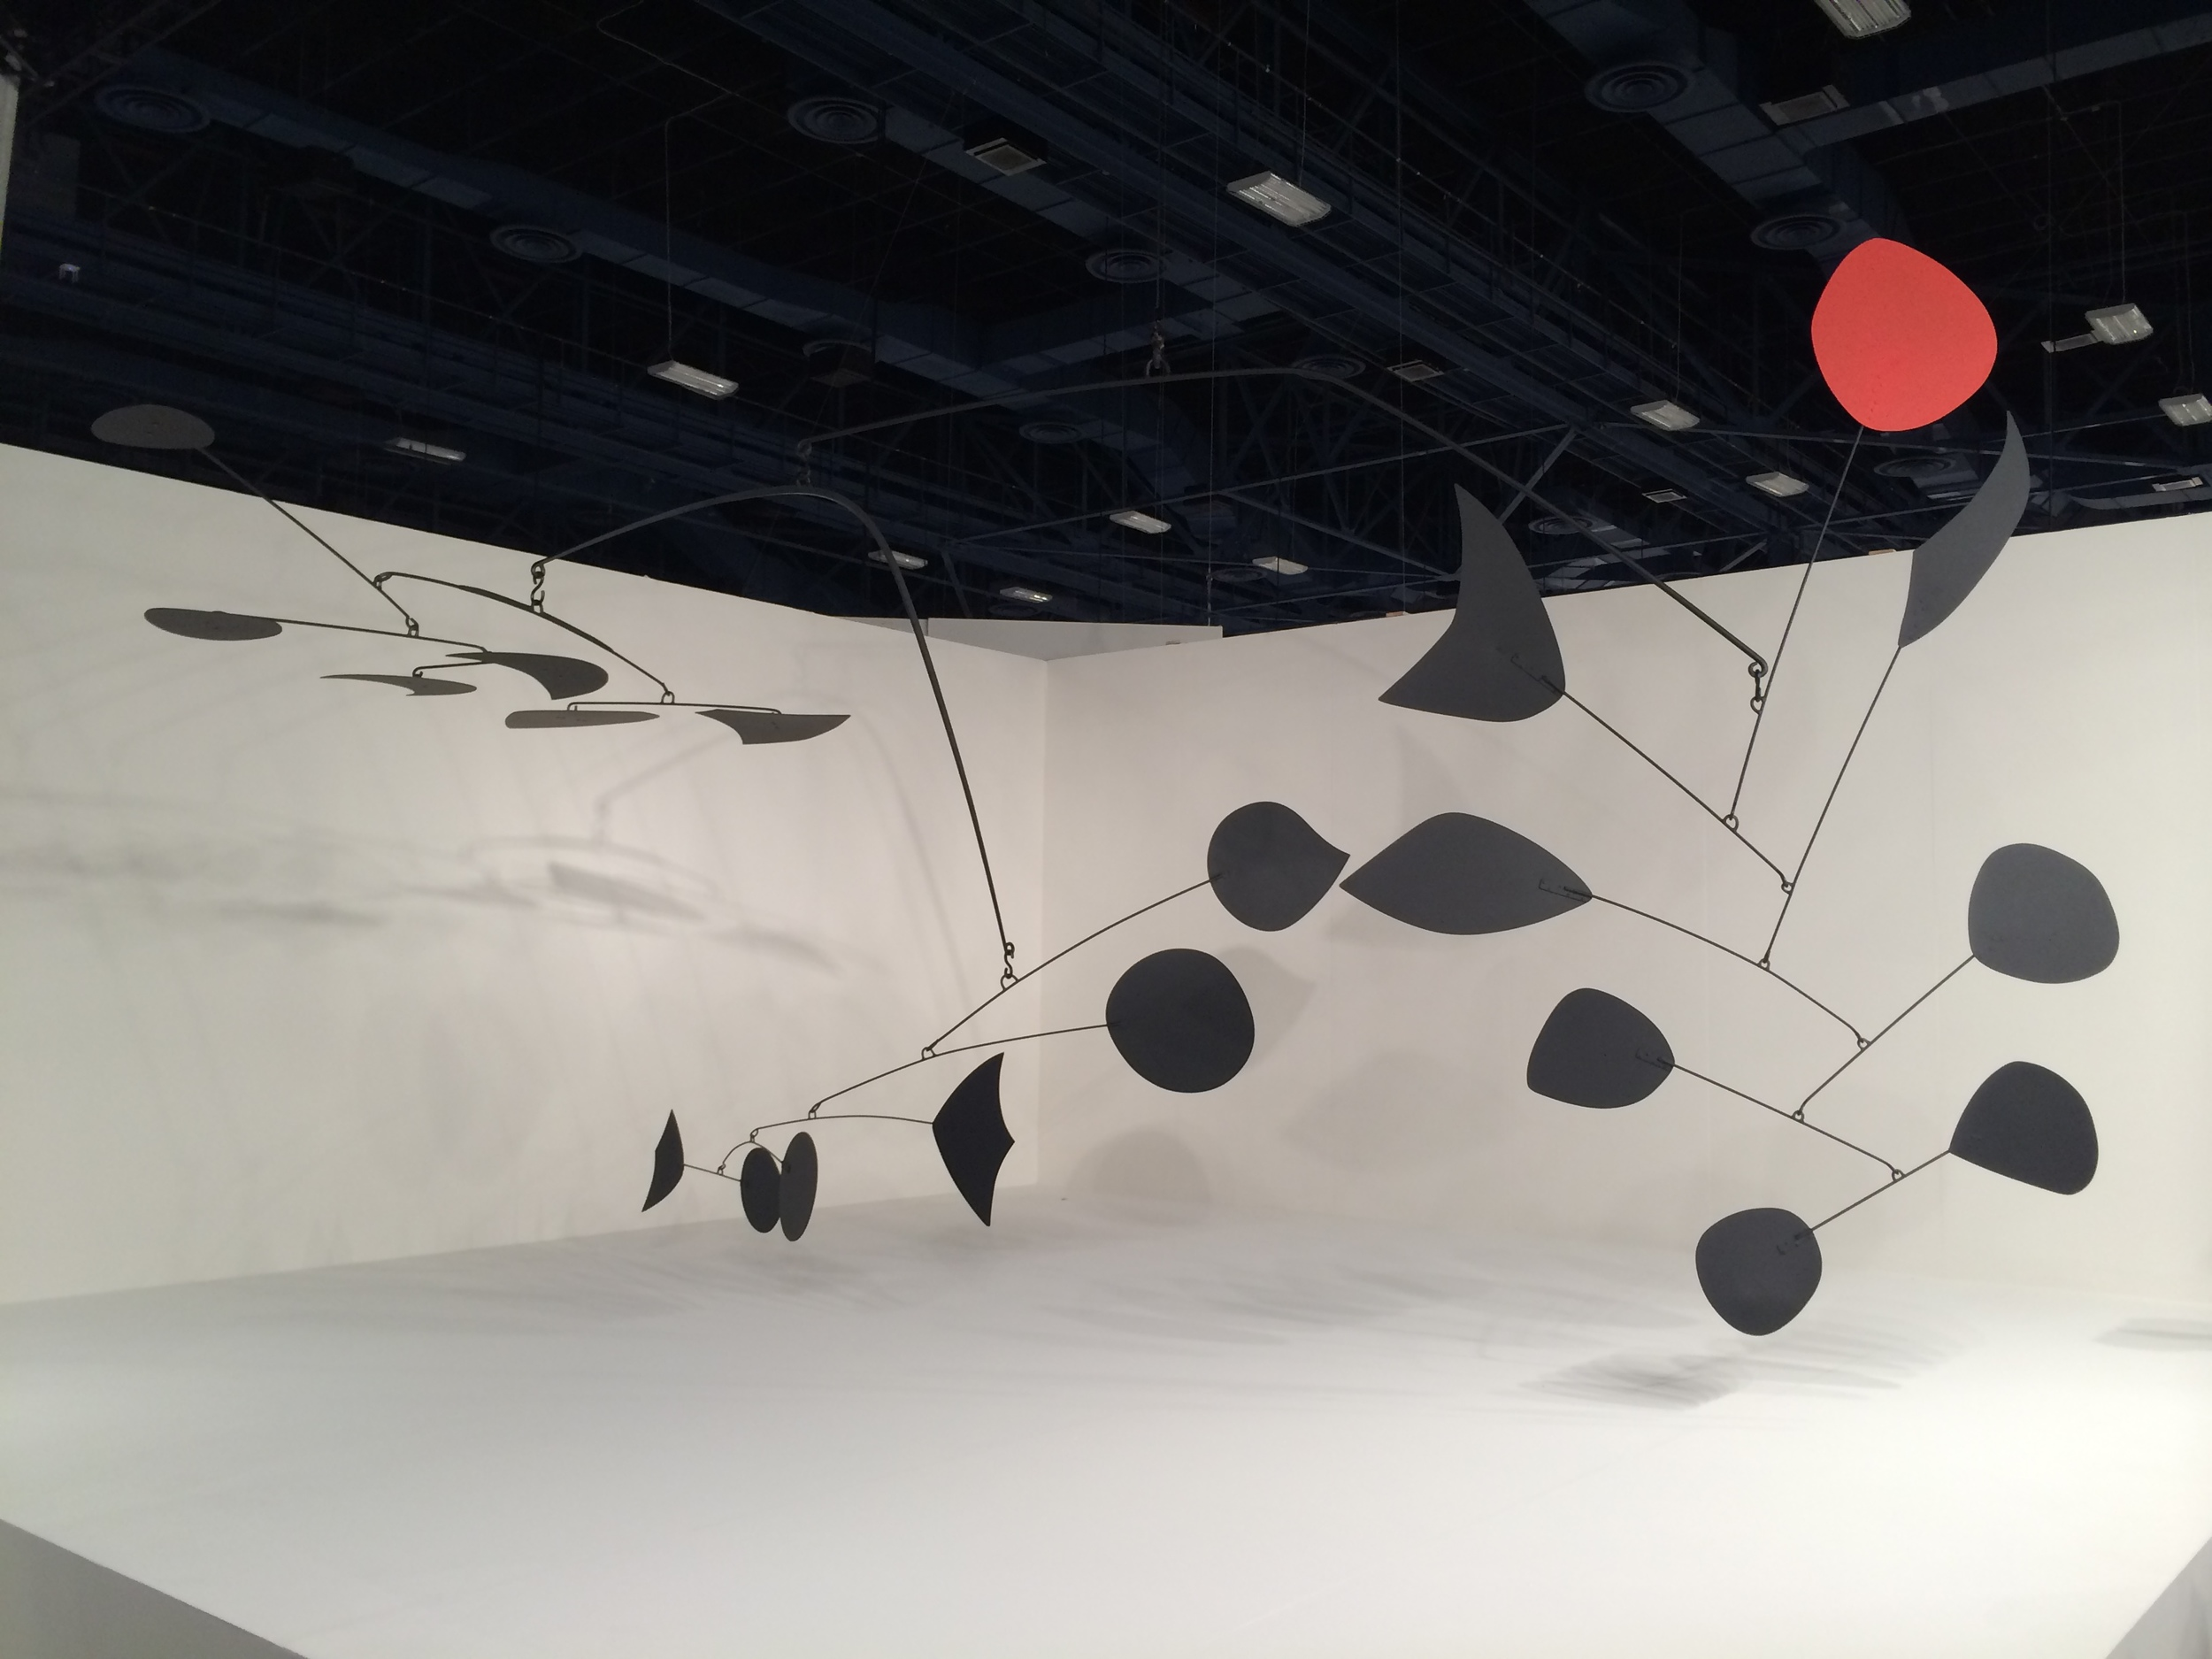 We don't know if this sculpture by Alexander Calder was the most expensive work on view, but it was probably close at $35 million.